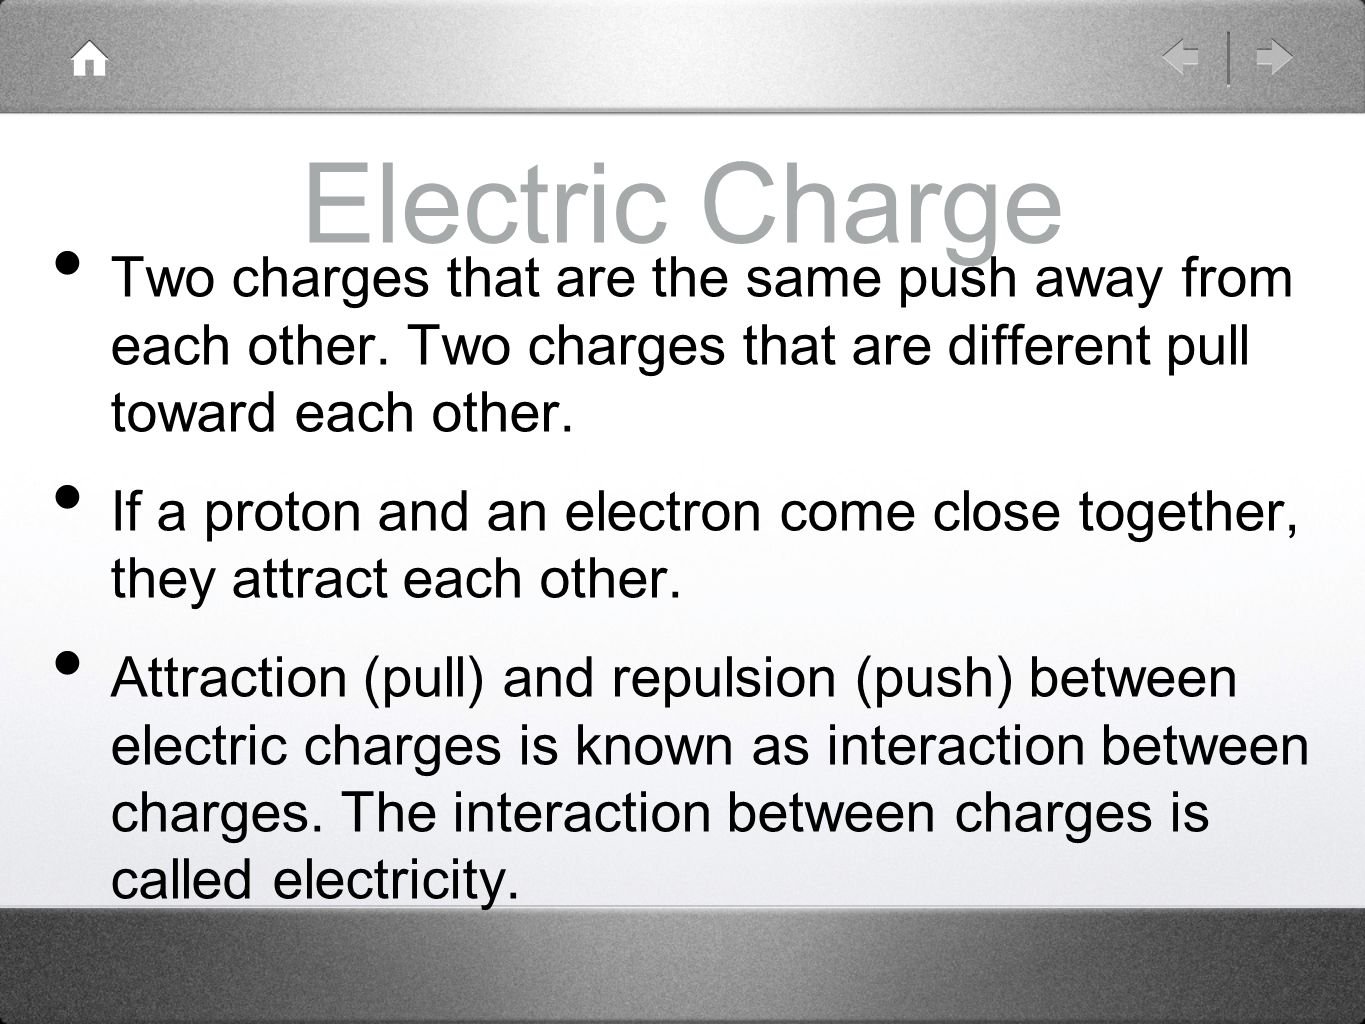 Electric Charge Two charges that are the same push away from each other. Two charges that are different pull toward each other.